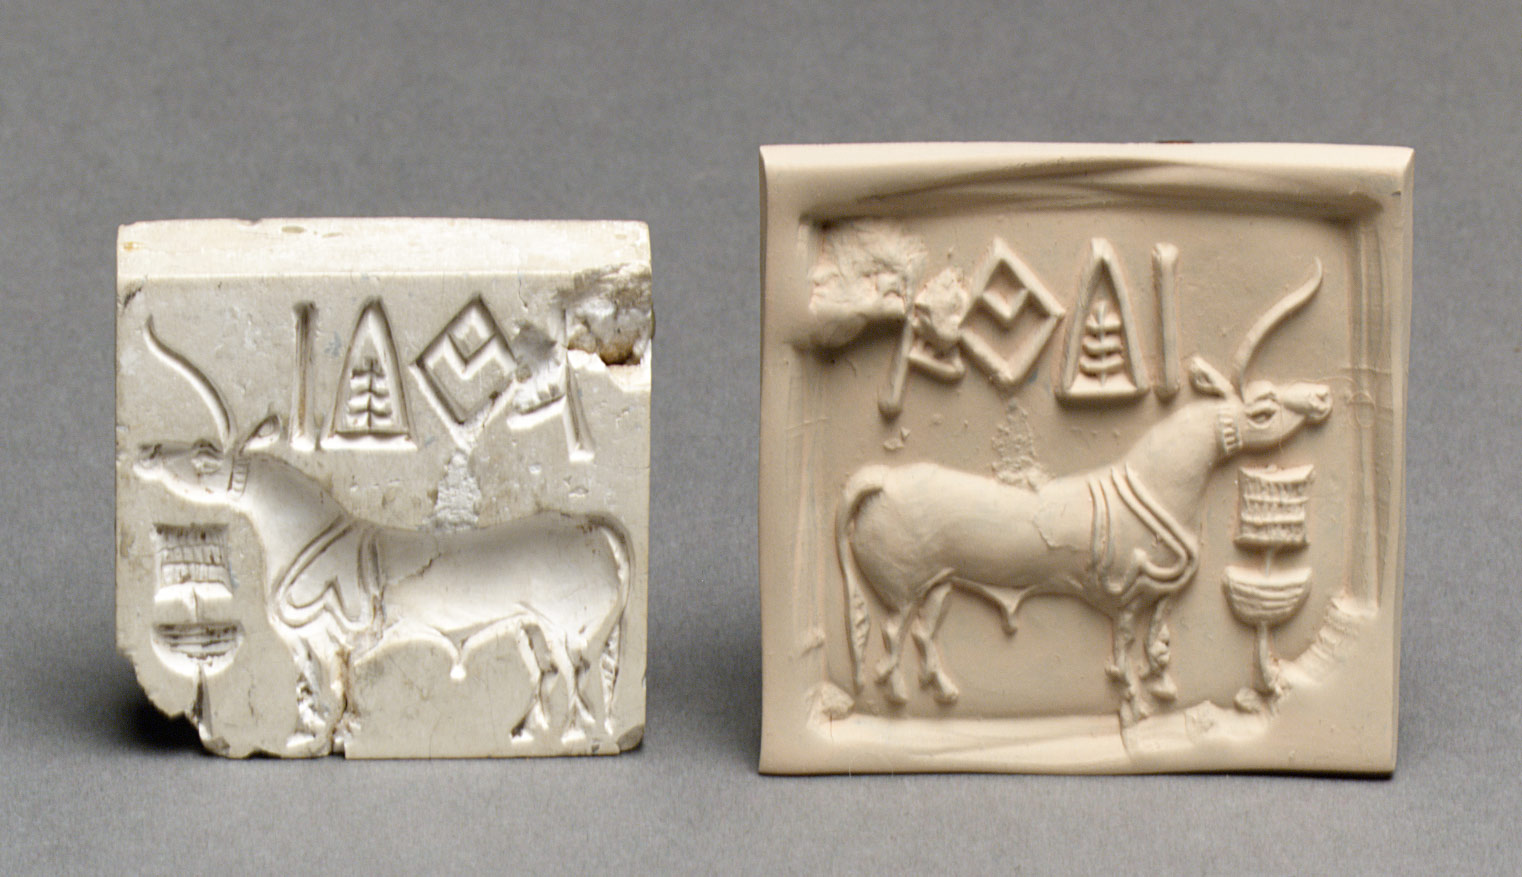 Stamp seal and modern impression: unicorn and incense burner (?)